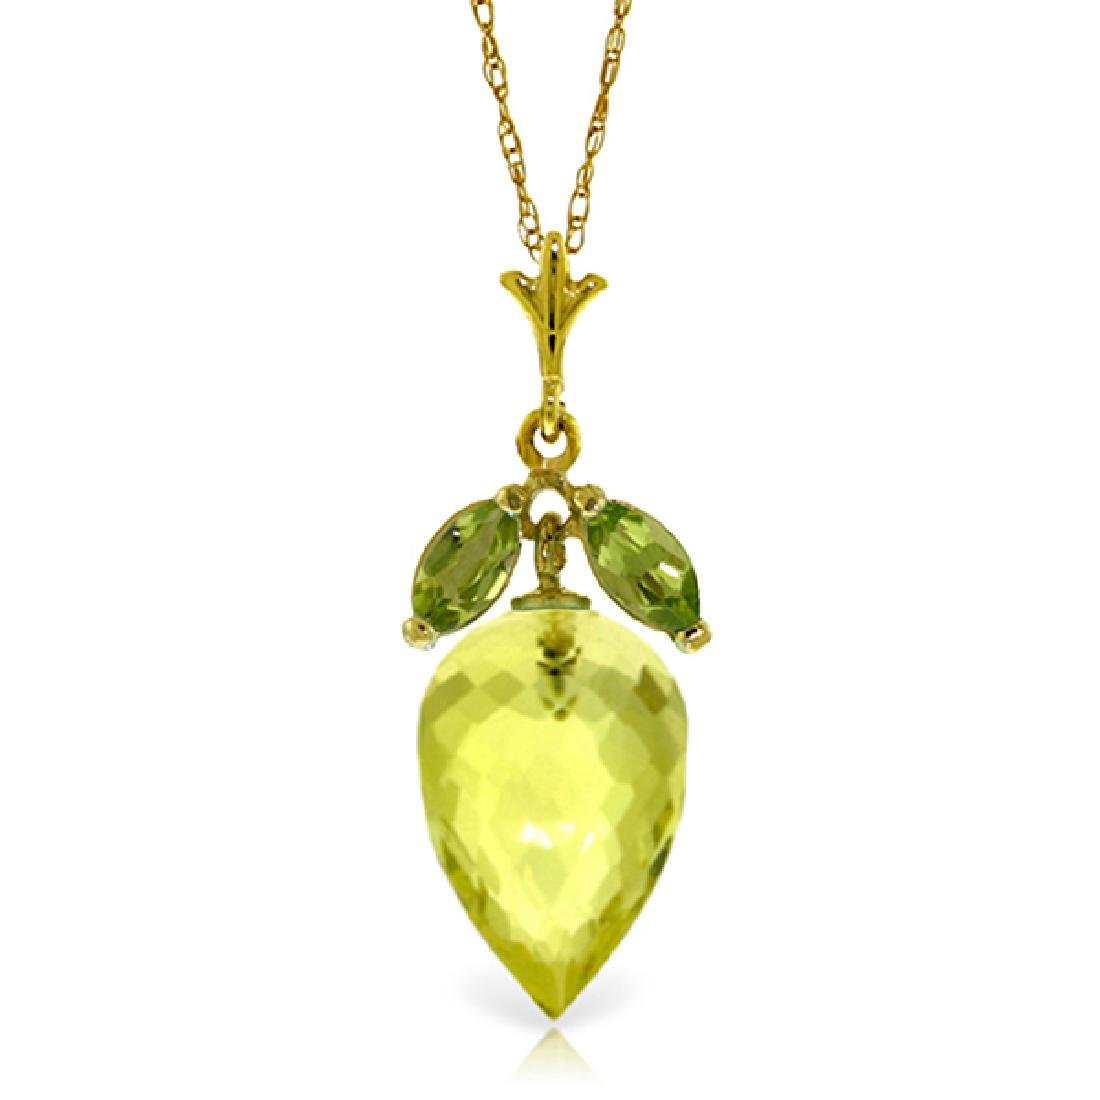 Genuine 9.5 ctw Quartz Lemon & Peridot Necklace Jewelry